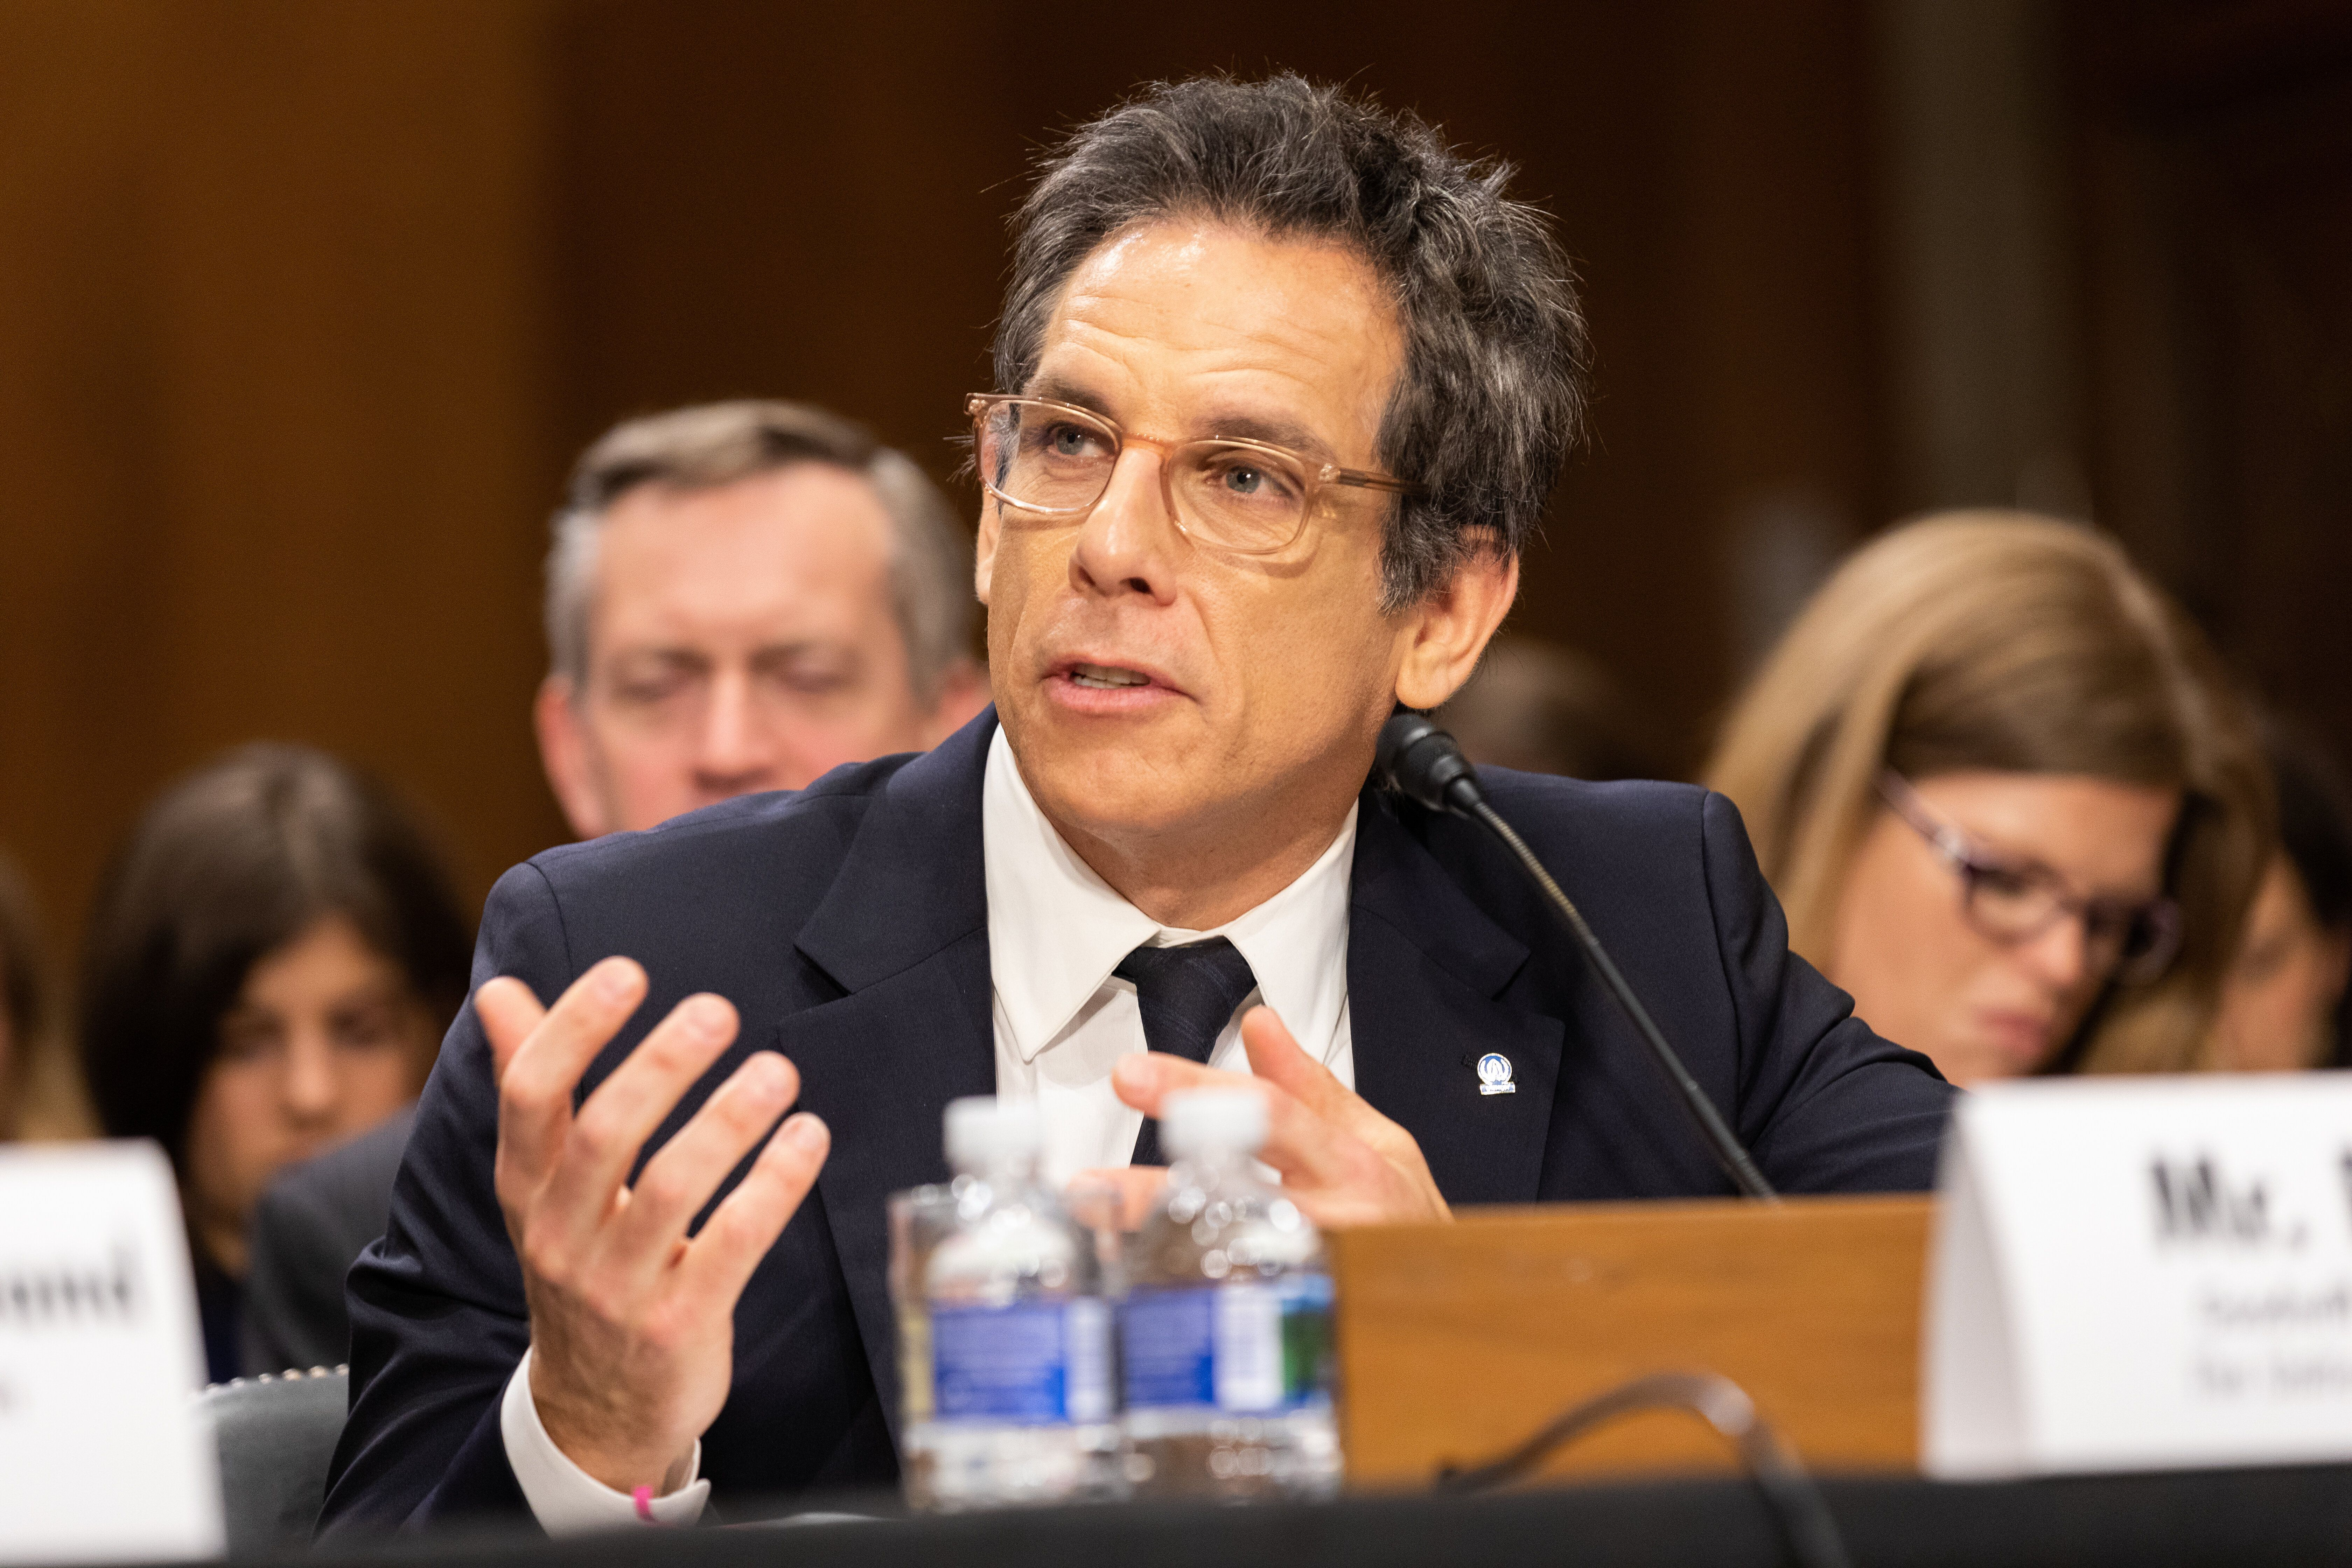 Actor Ben Stiller, Good Will Ambassador for the UN High Commission for Refugees, testified before the Senate Foreign Relations Committee on Wednesday morning about the humanitarian crisis in Syria. May 1, 2019, Washington, D.C.  (Photo by Aurora Samperio/NurPhoto via Getty Images)